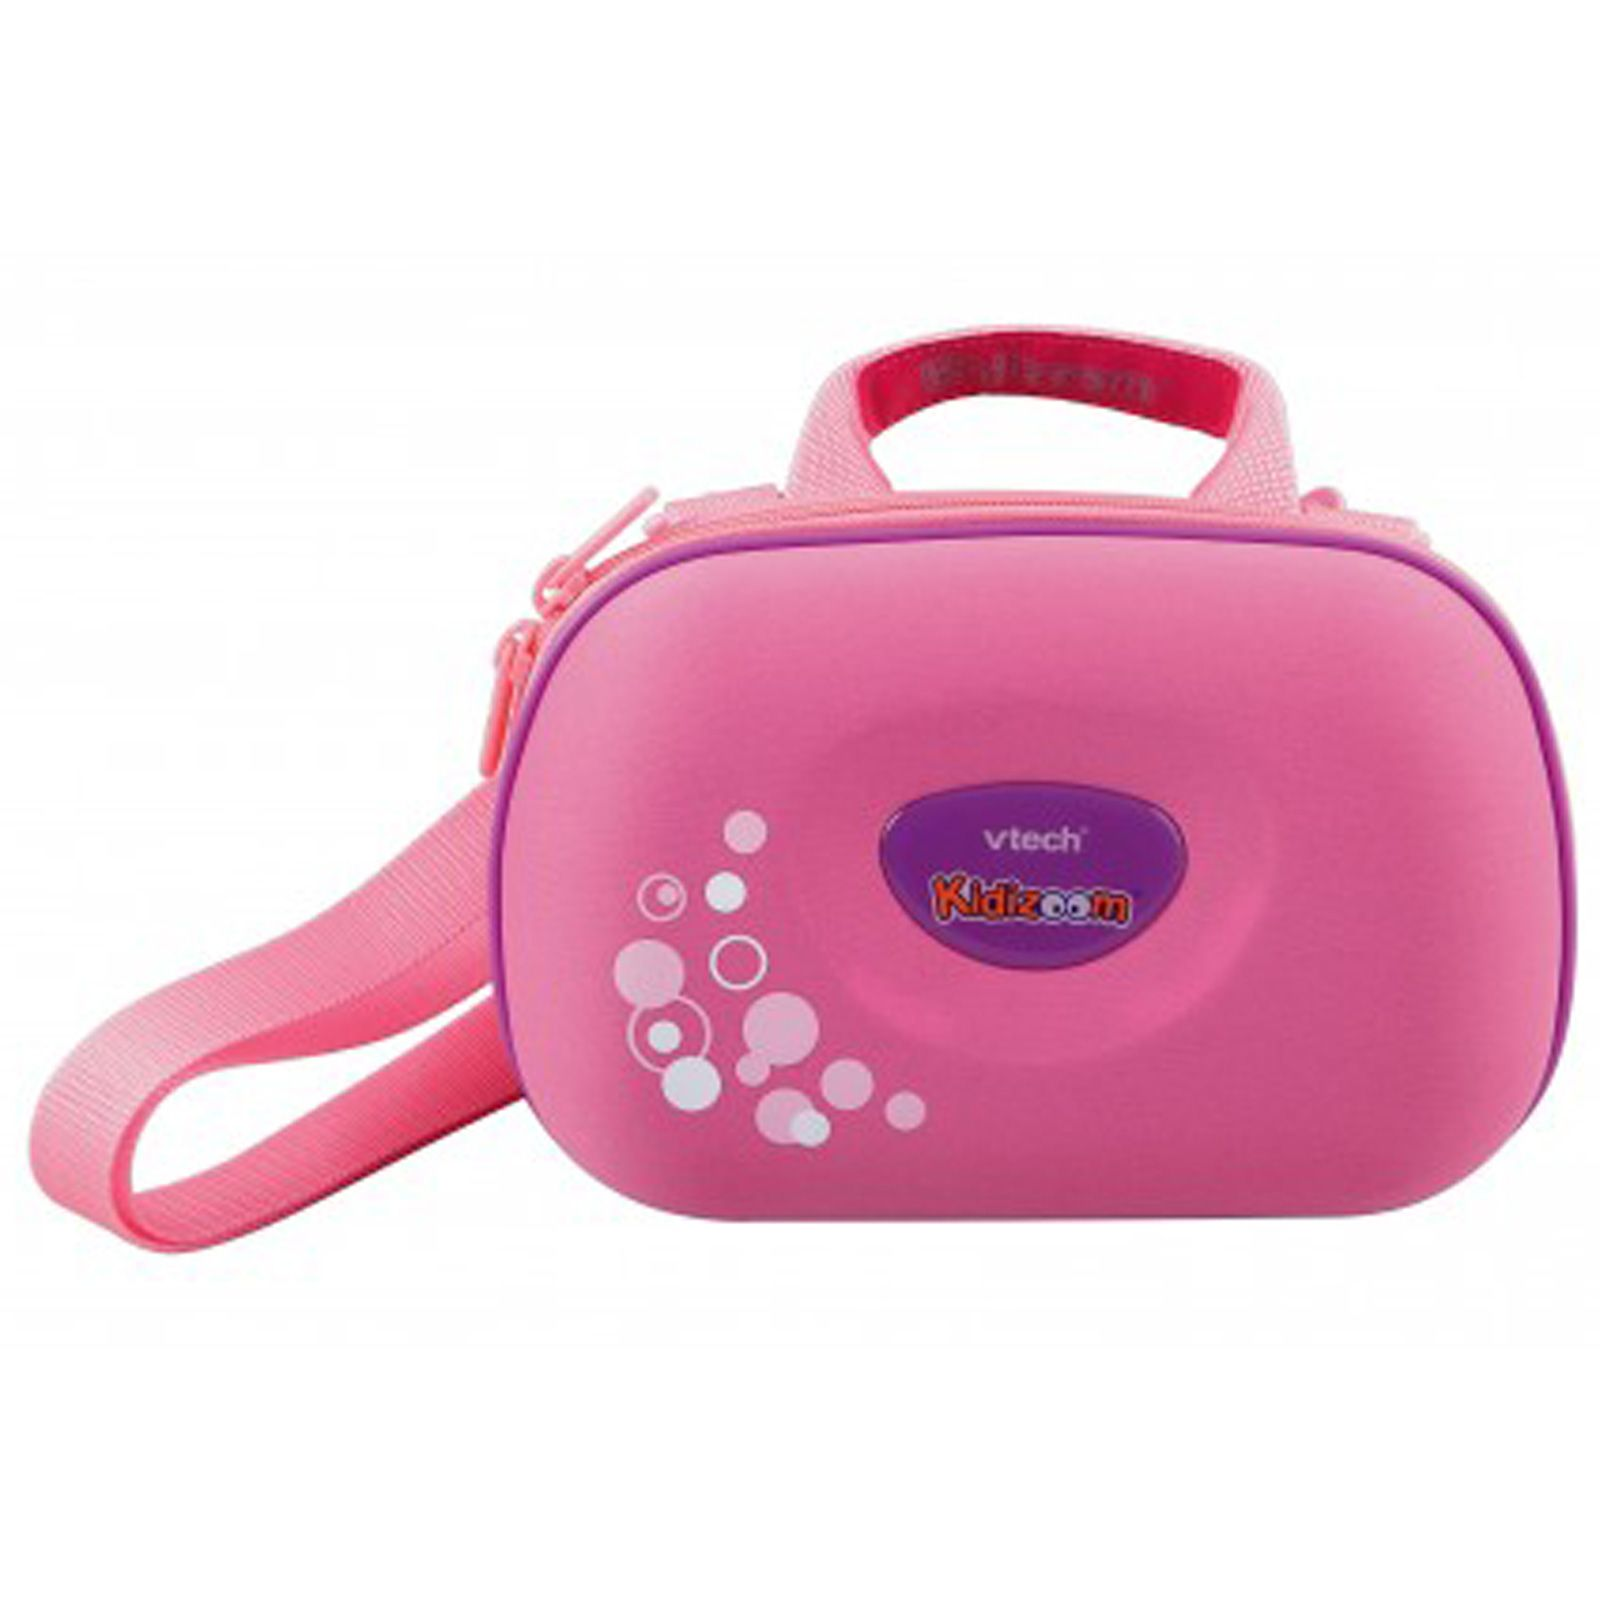 ... about VTECH KIDIZOOM CAMERA CASE PINK - HARD LUGGAGE NEW OFFICIAL